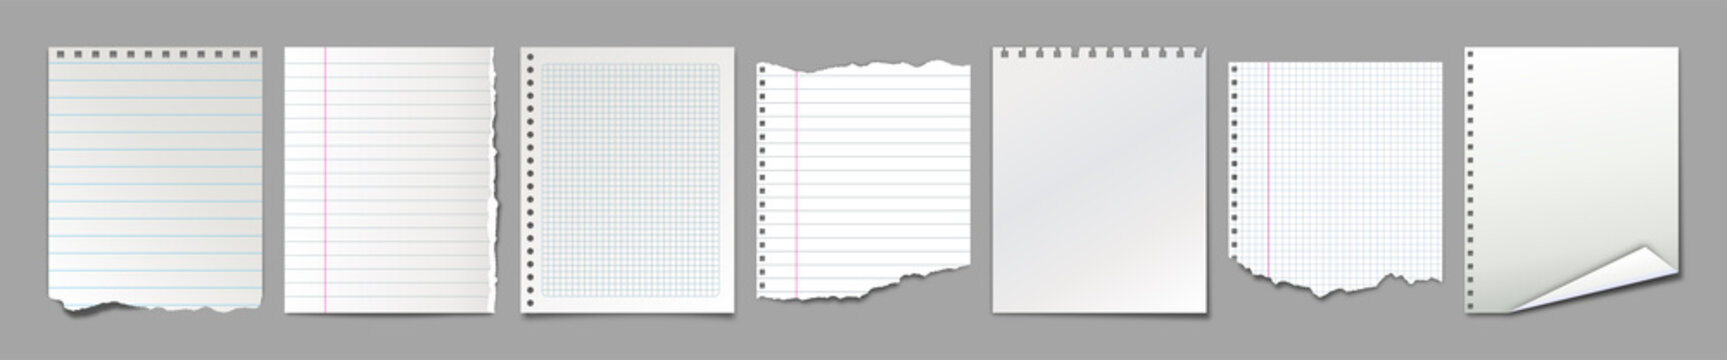 Set of different blank notebook torn pages. Pieces of ripped paper for notes. Vector illustration